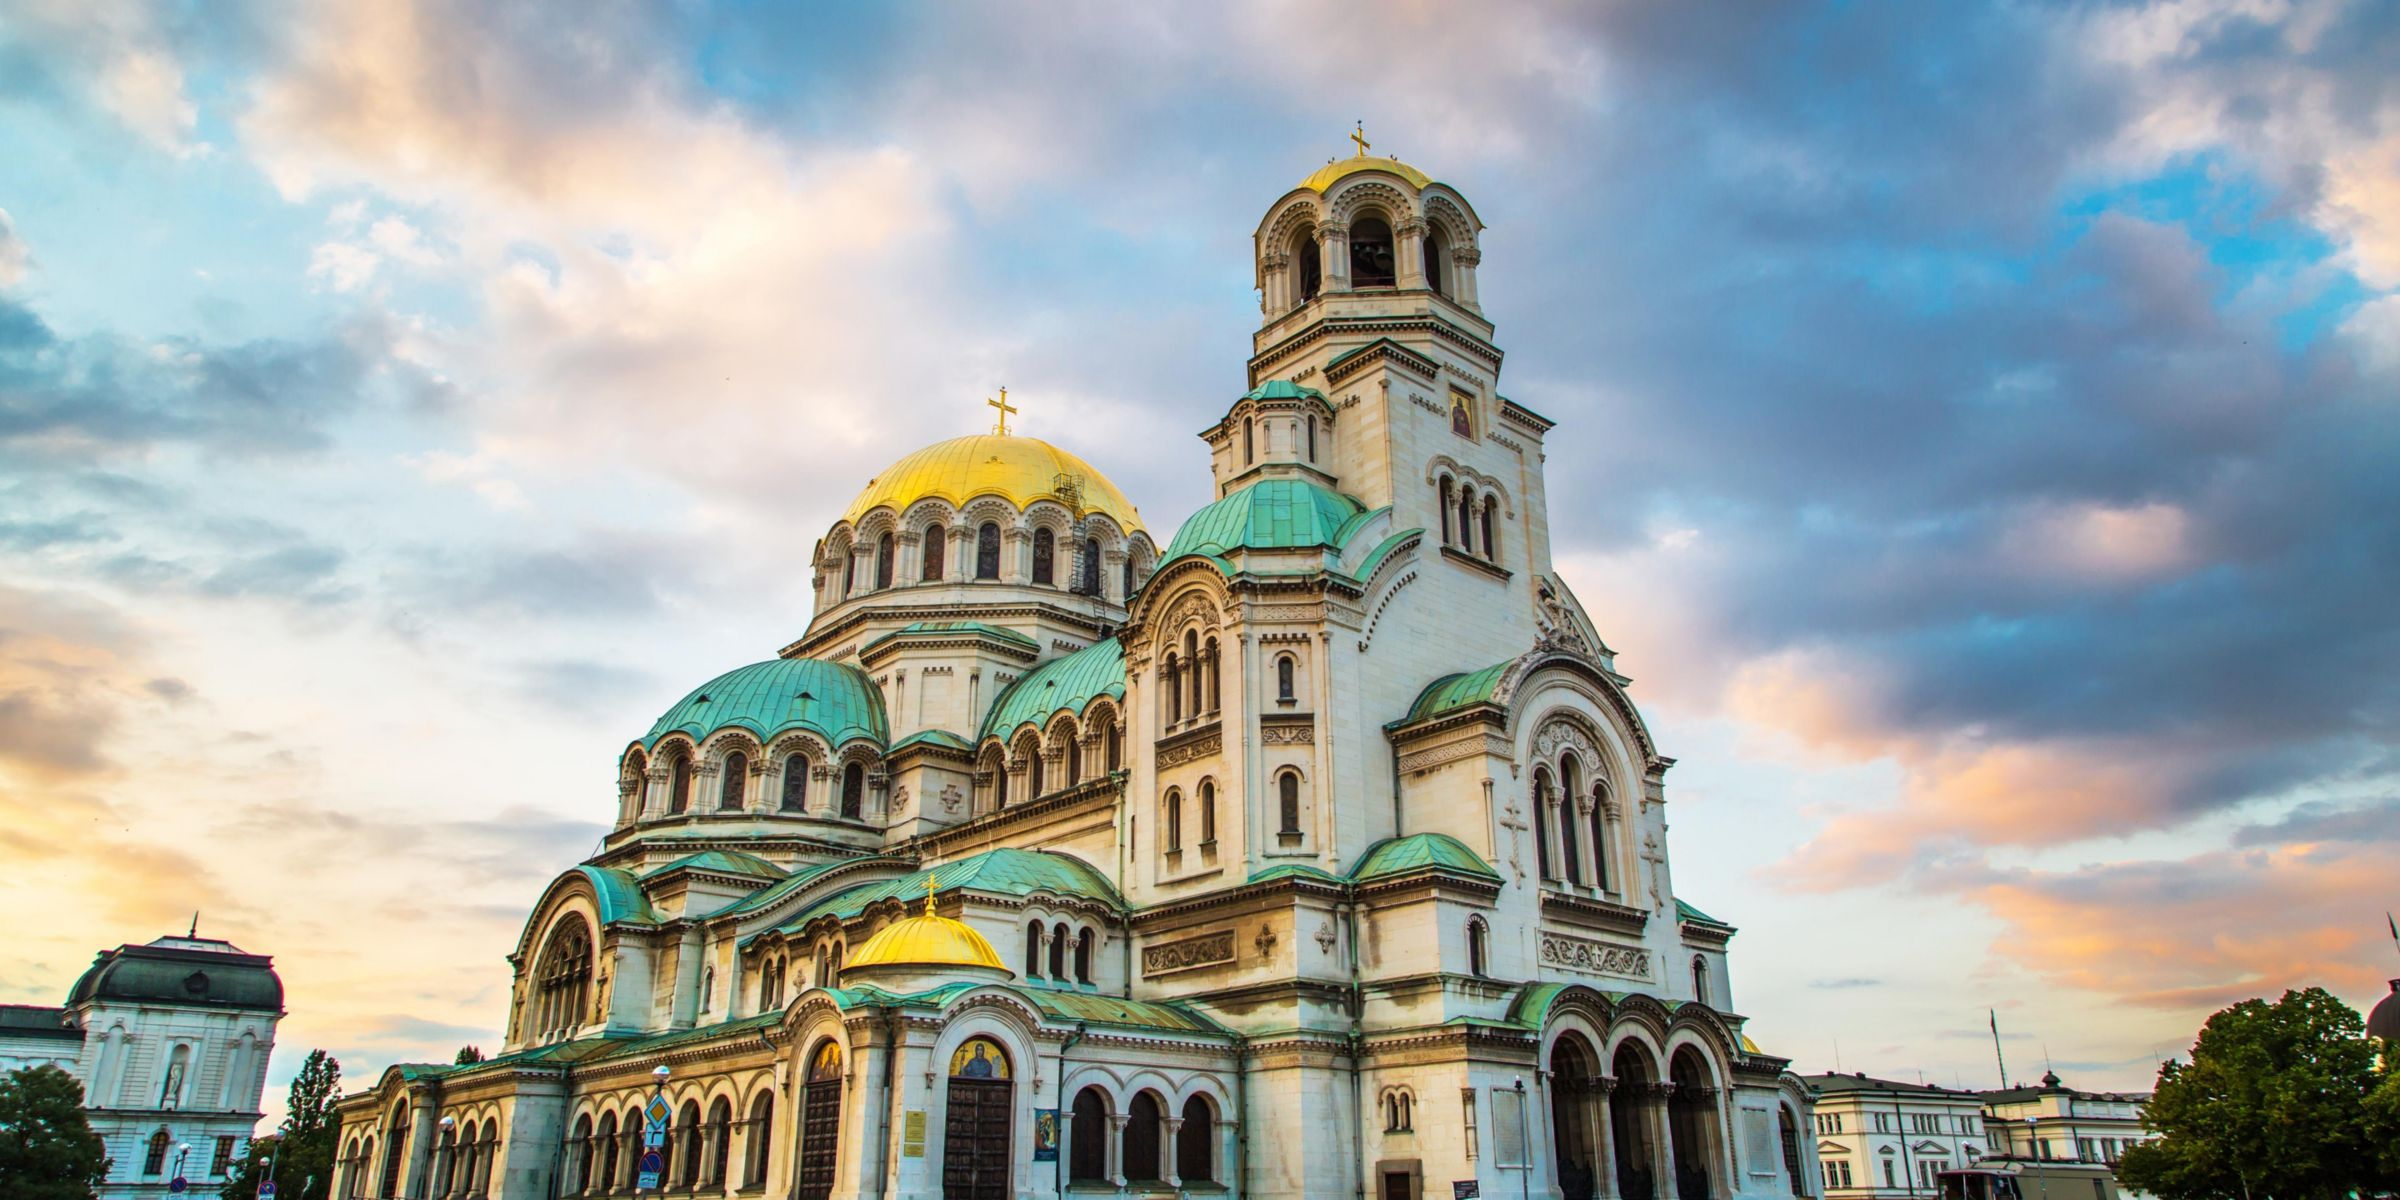 Visit major attractions of the city